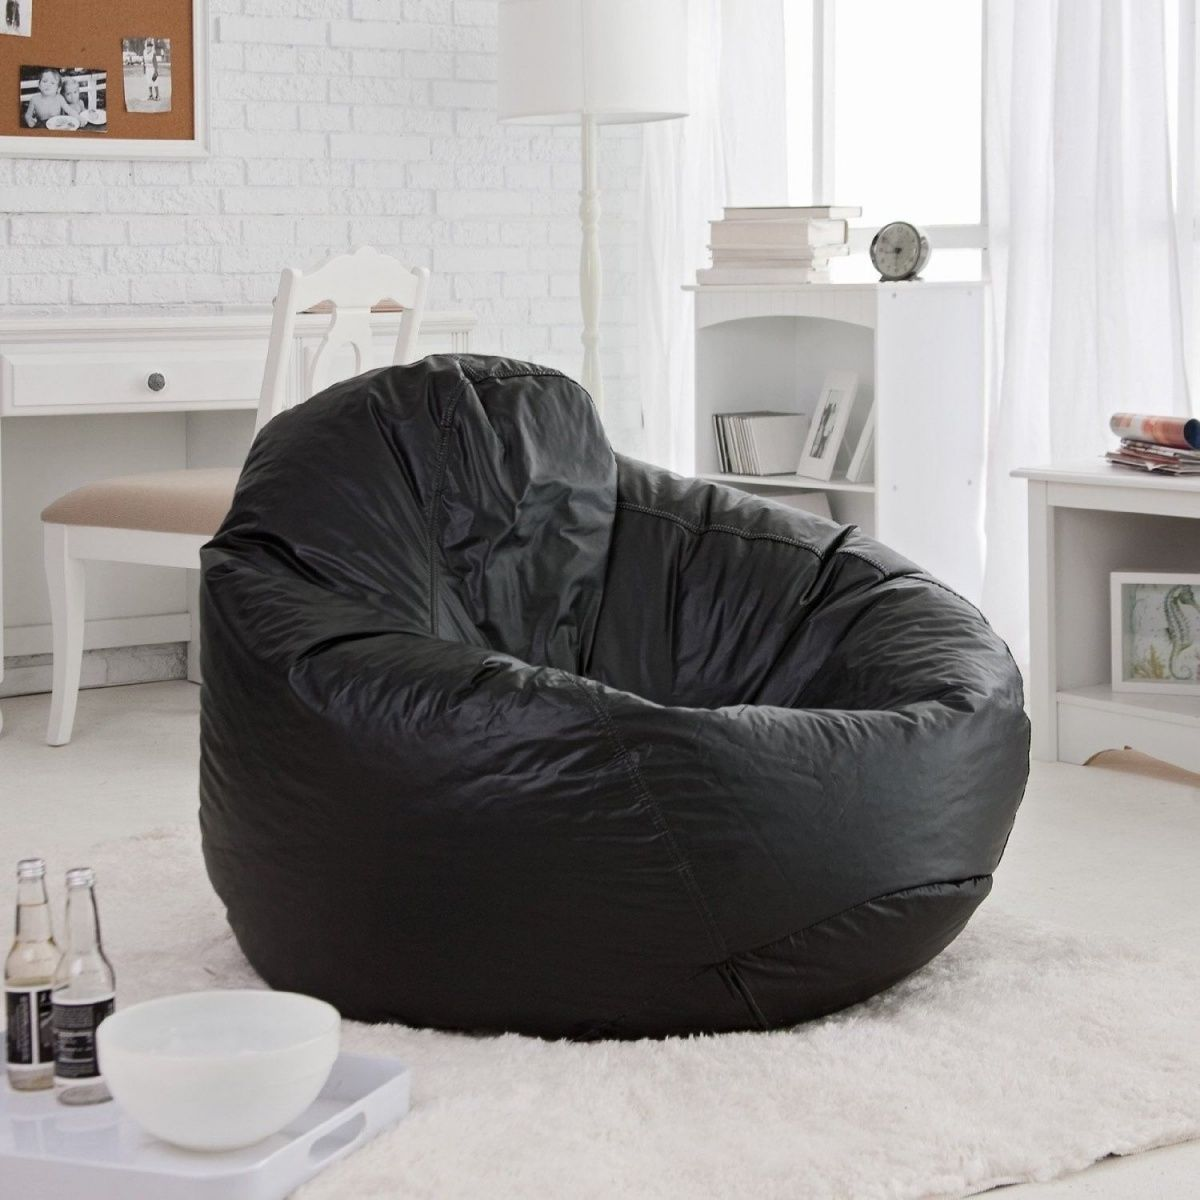 Large Bean Bag Chairs Cheap For Designing Your Home Is Possible Even You Can Add New Vibe In House As Put It At The Right Spot